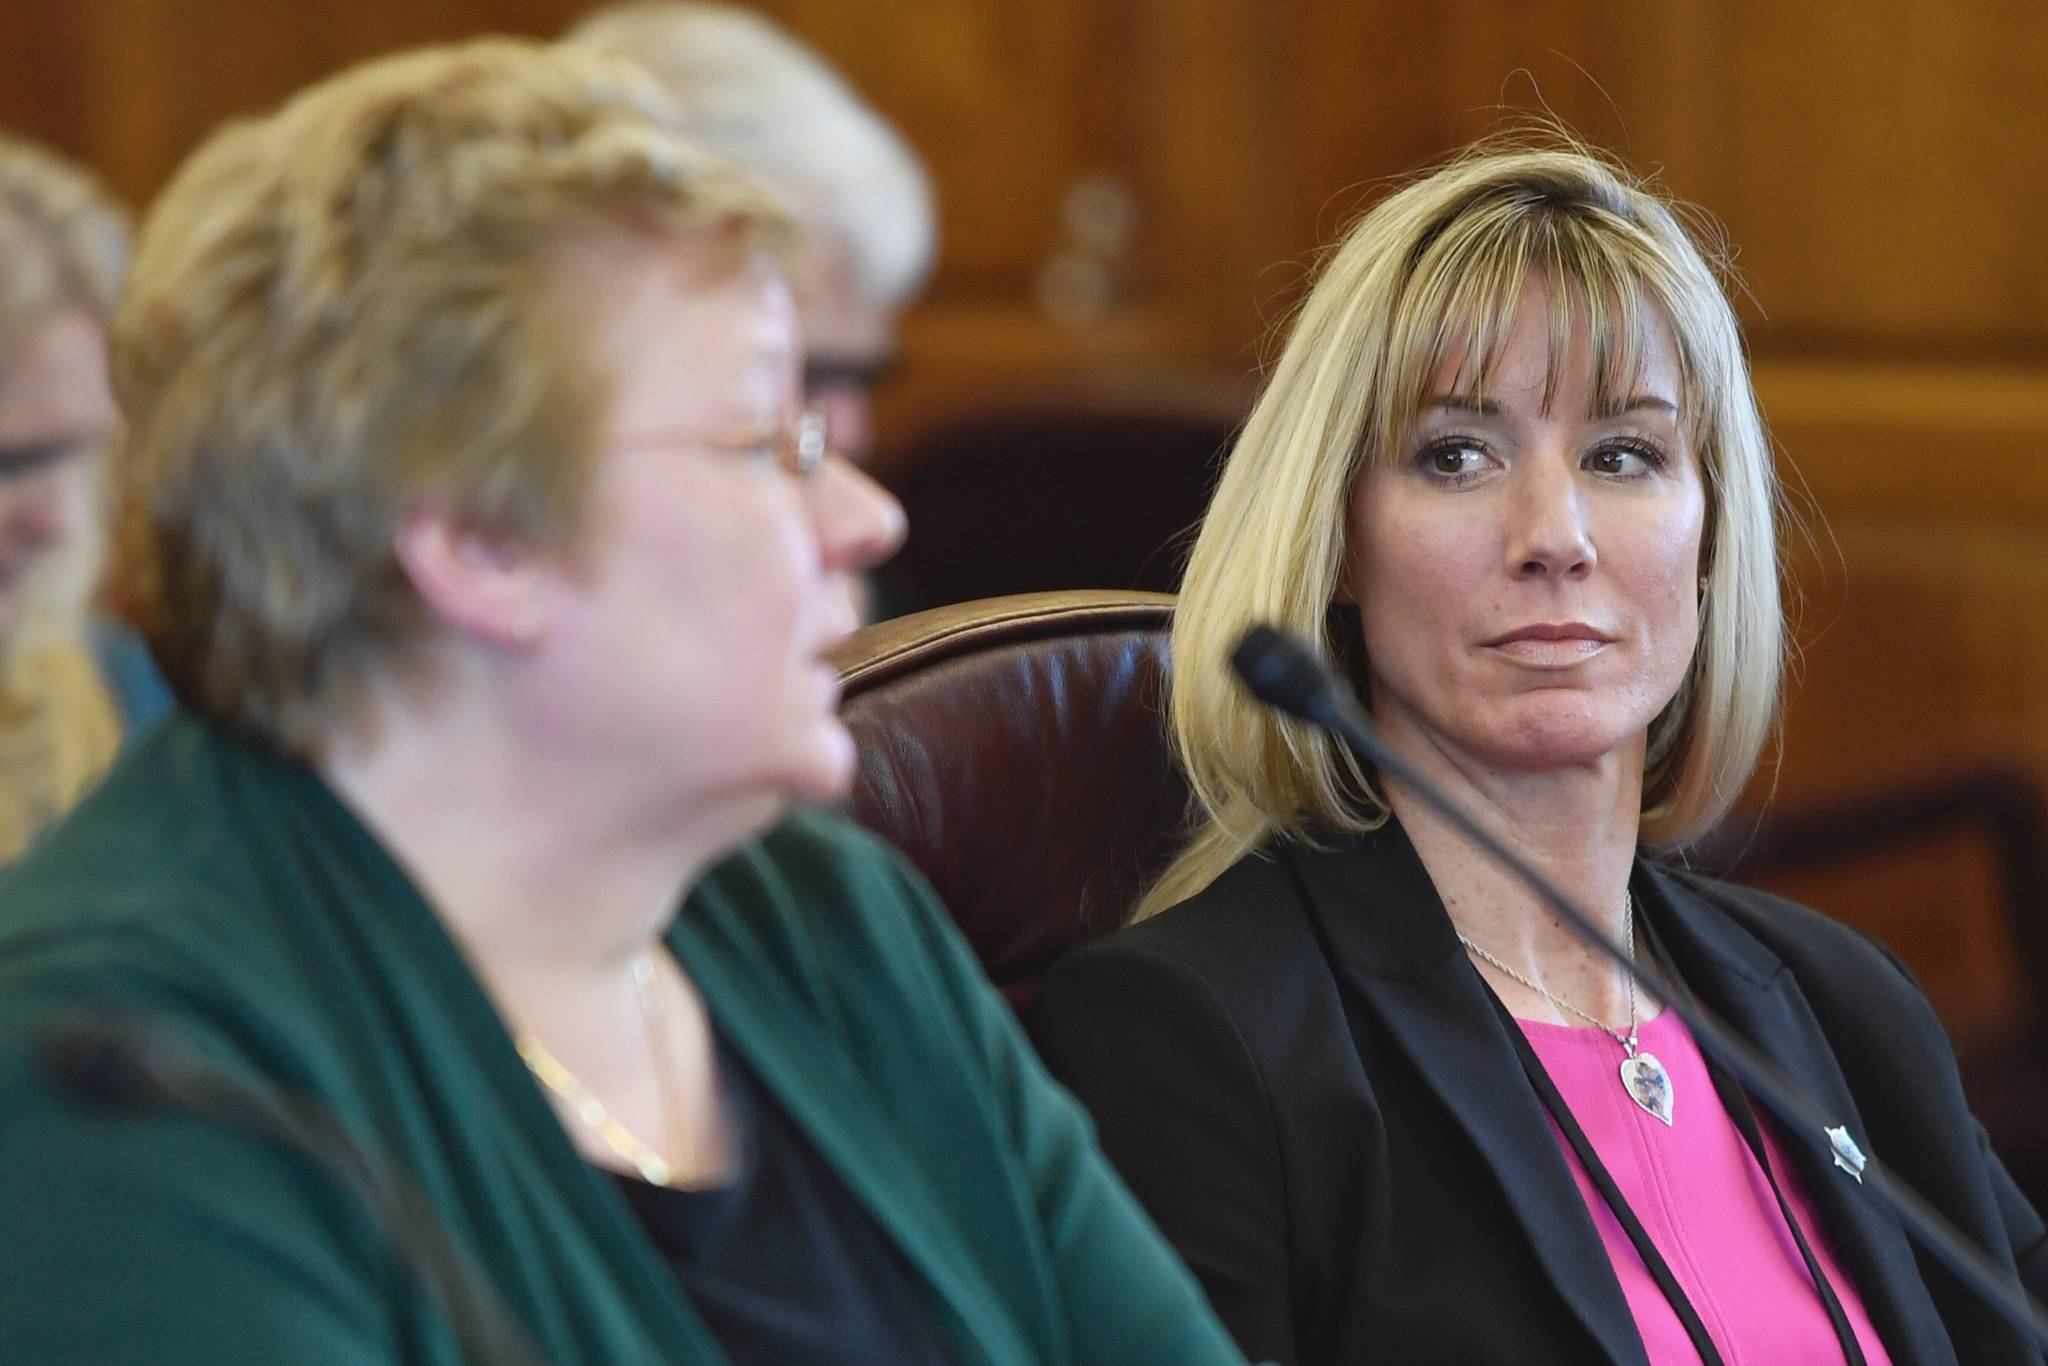 Amanda Price, commissioner of the Department of Public Safety, right, watches as Kathryn Monfreda, bureau chief of the Department of Public Safety's Division of Statewide Services, presents the Uniform Crime Reporting Annual Report to House members during an informational meeting at the Capitol on Tuesday, Feb. 5, 2019. (Michael Penn | Juneau Empire File)